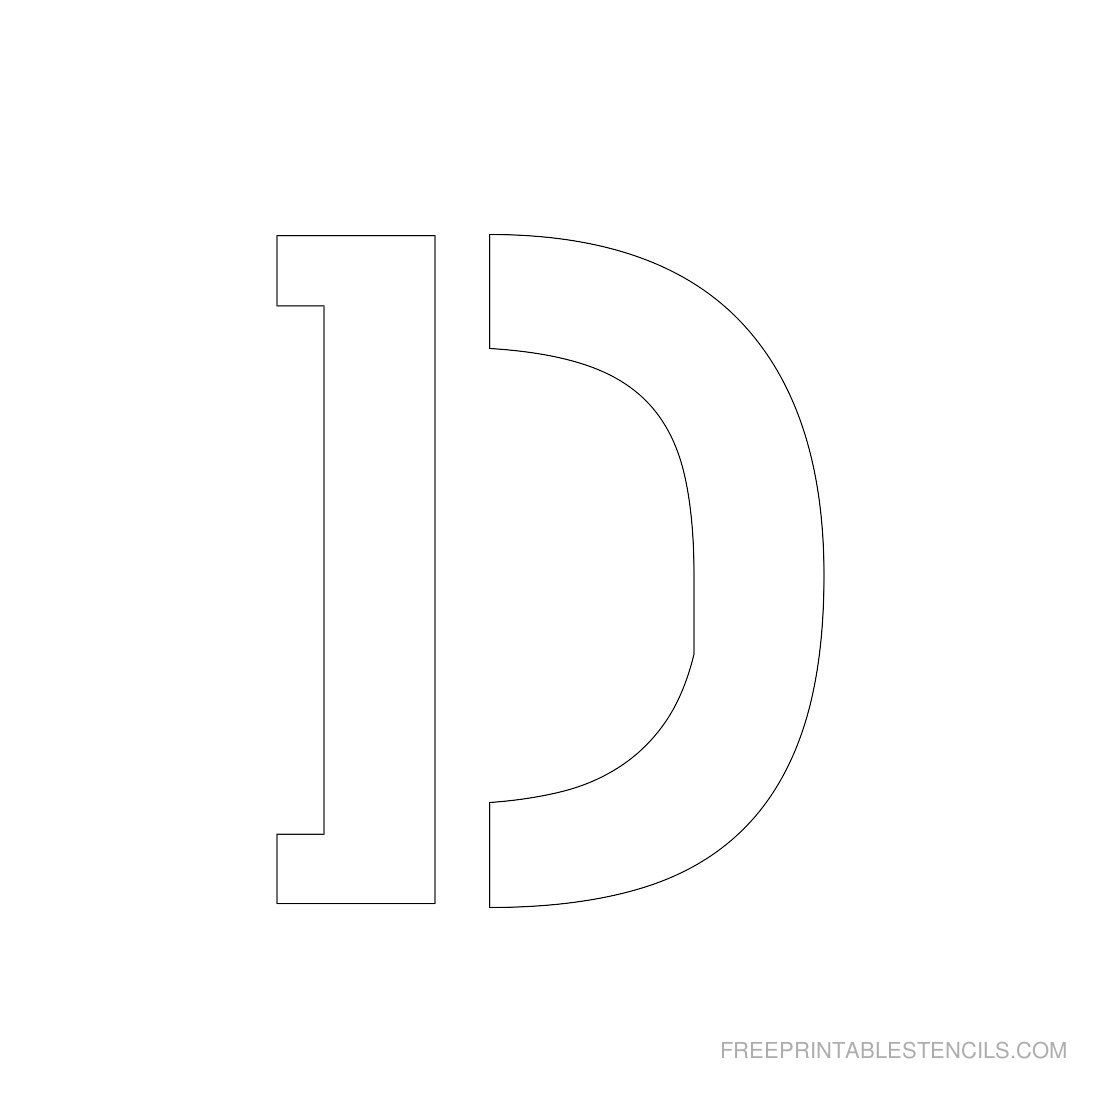 Printable 3 Inch Letter Stencils   Free Printables   Pinterest - Free Printable 3 Inch Number Stencils